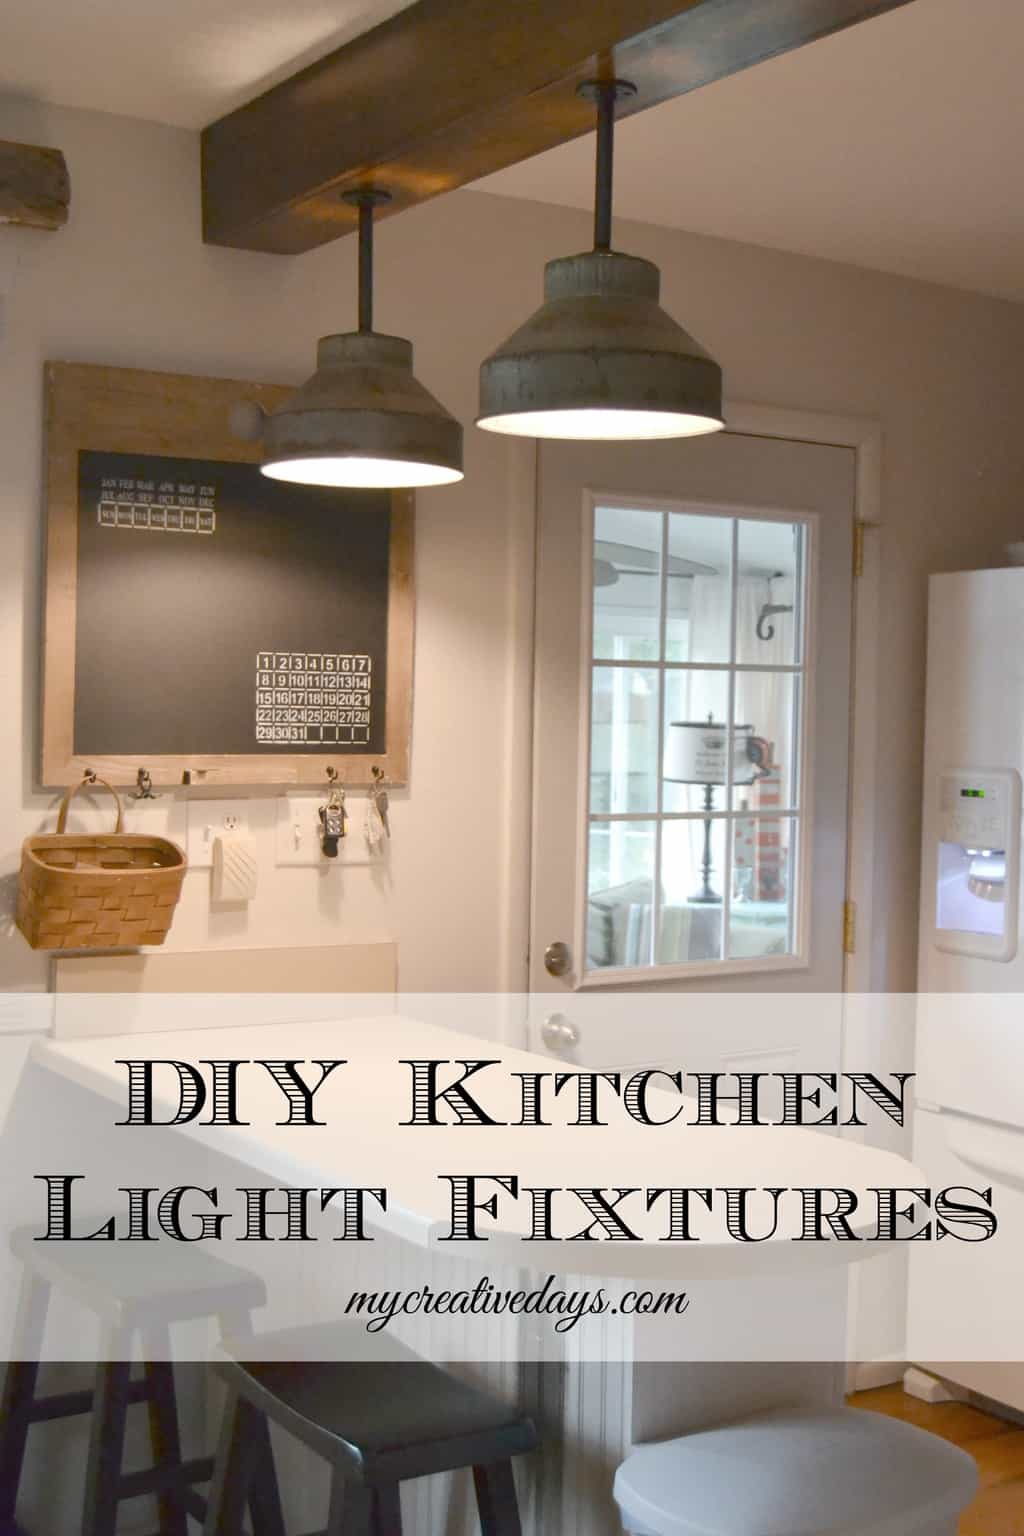 Lighting Above Kitchen Sink Inspiration - Light fixture above kitchen sink